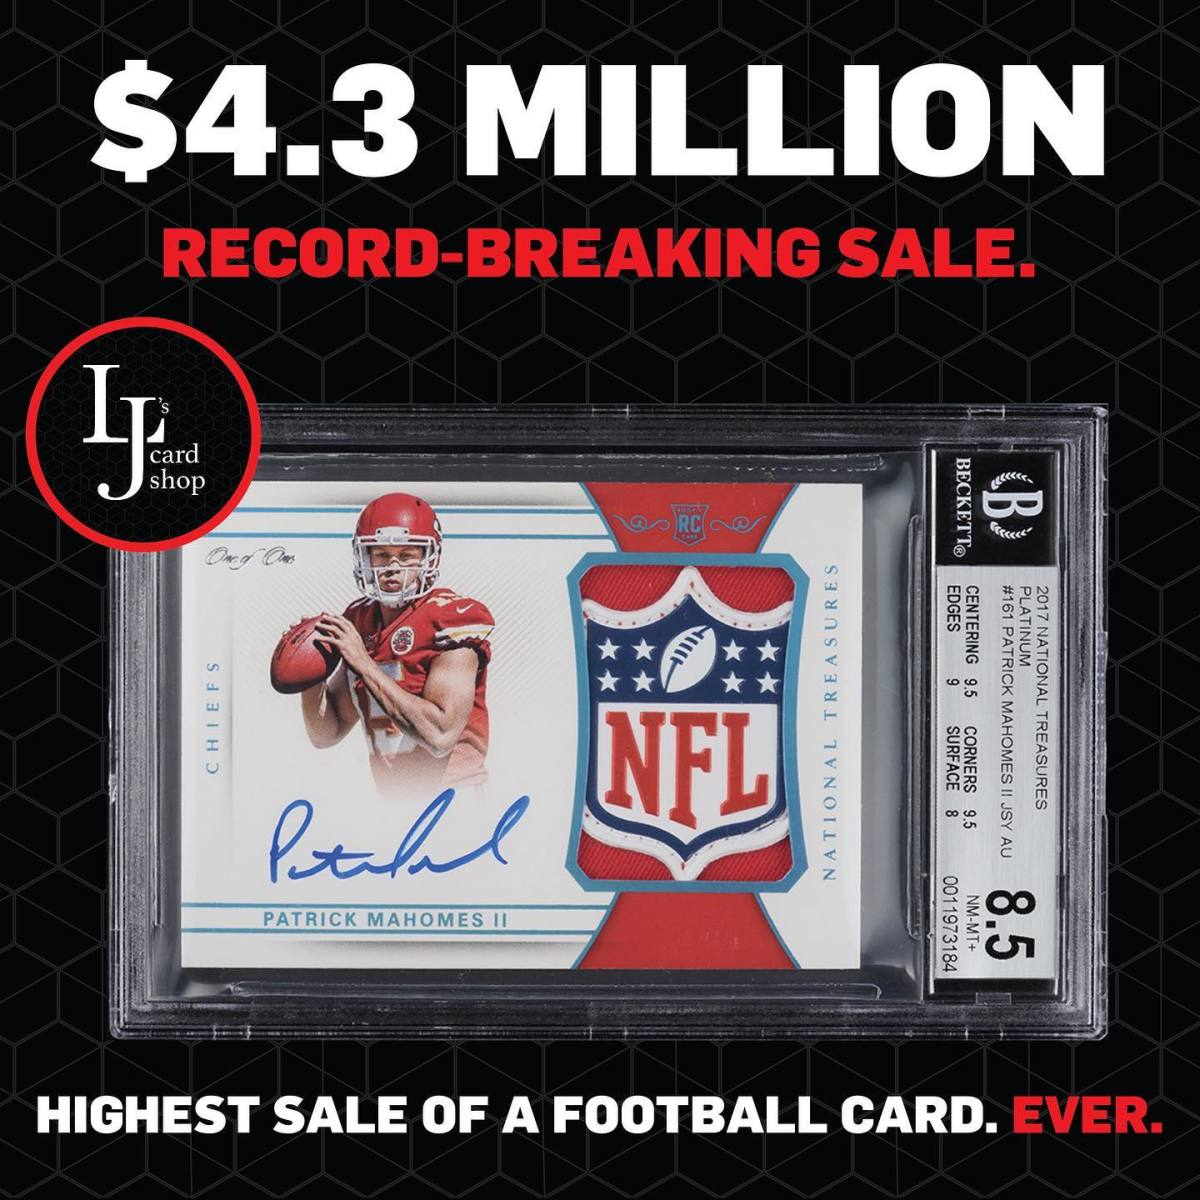 LJ's Card Shop promotes the purchase of a special Patrick Mahomes rookie card for $4.3 million.